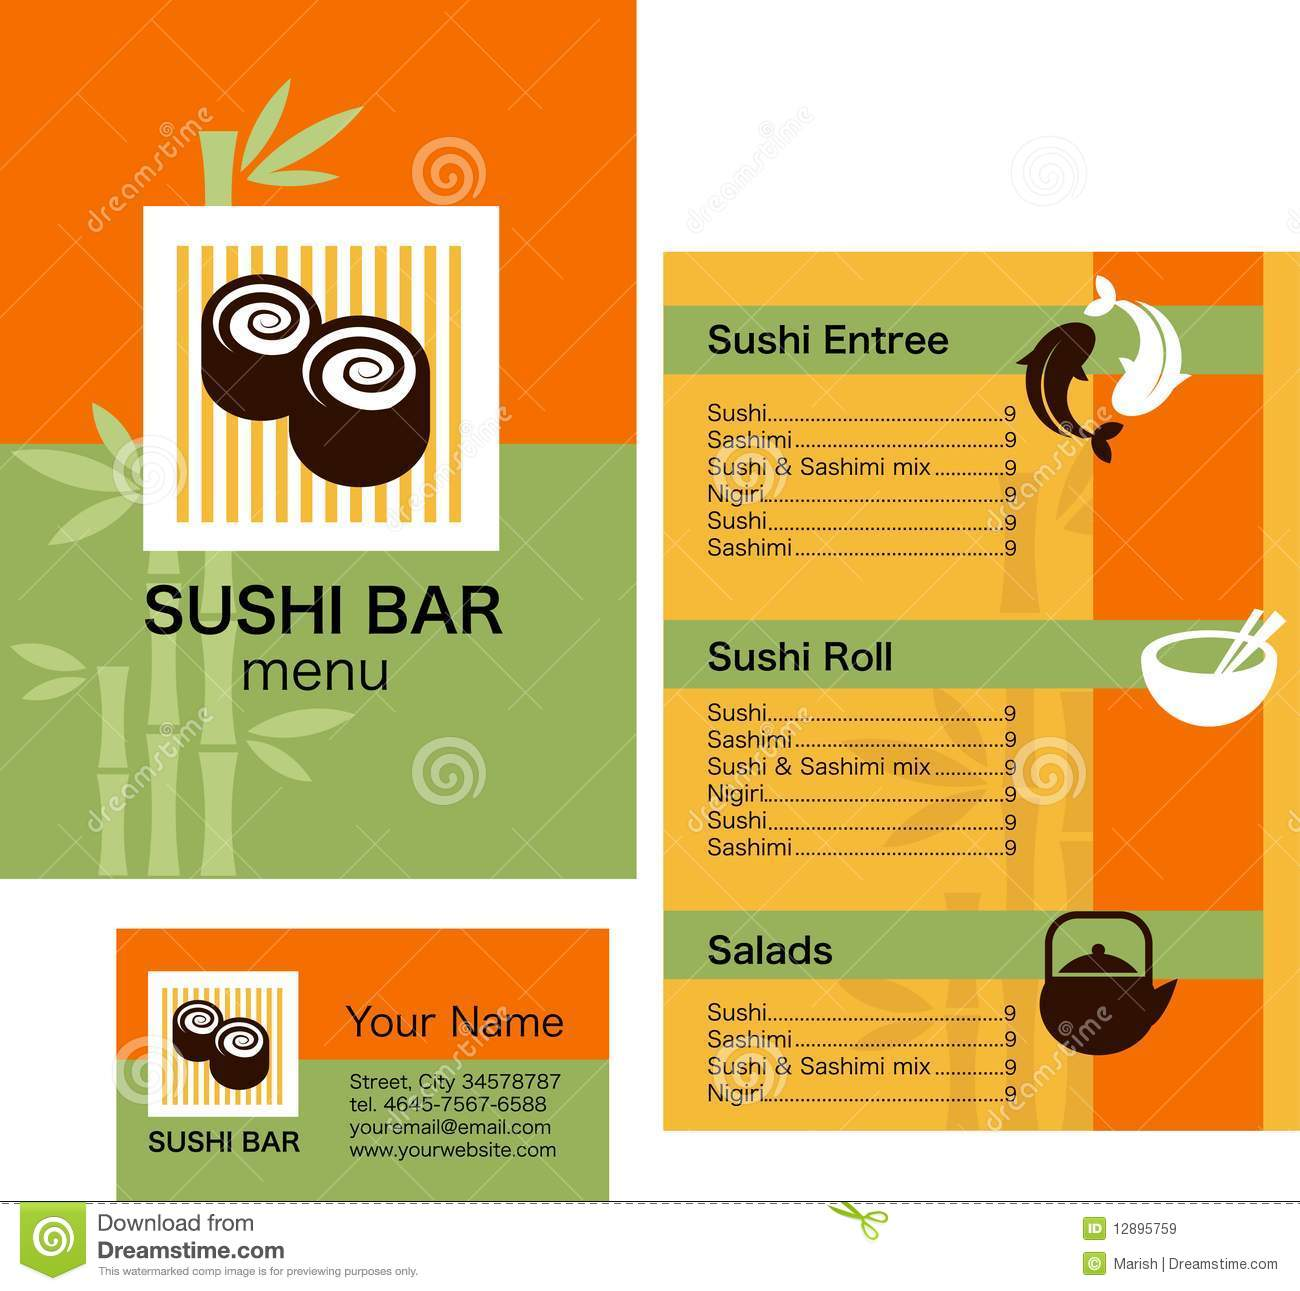 Sushi menu template and business card with logo stock vector sushi menu template and business card with logo fbccfo Images